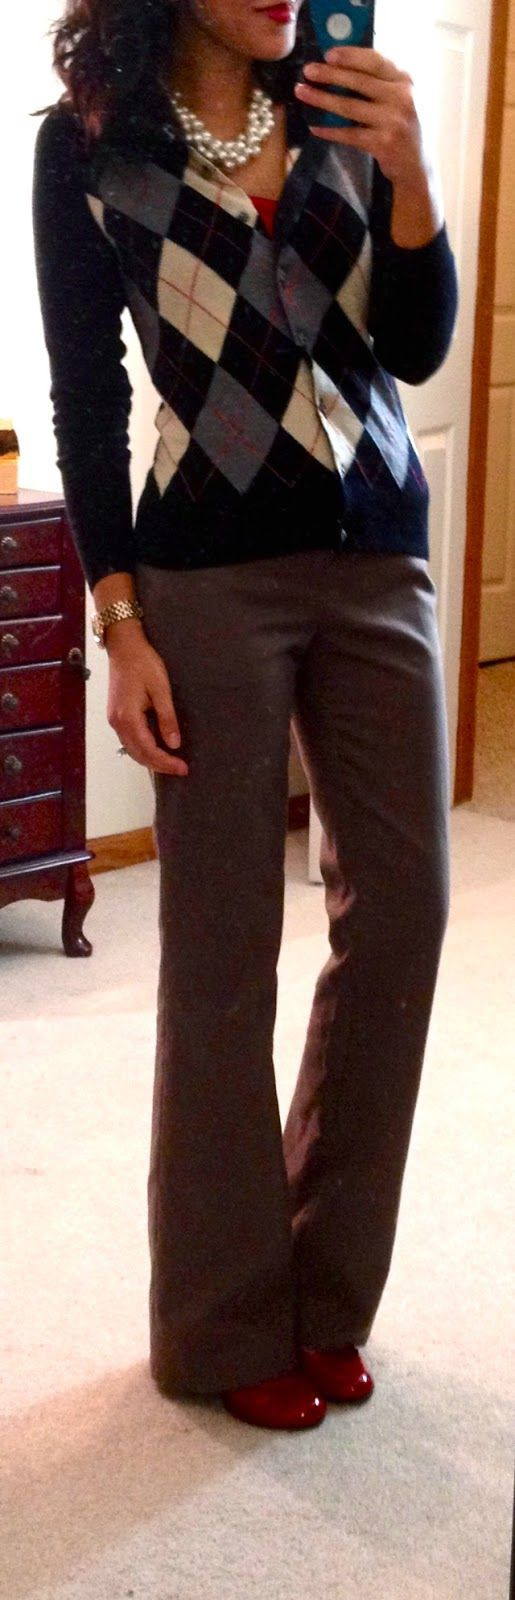 LOFT tank, NY cardi & watch, Banana Republic outlet Martin Wool Trousers, Target Mossimo Pearce Pumps, F21 necklace